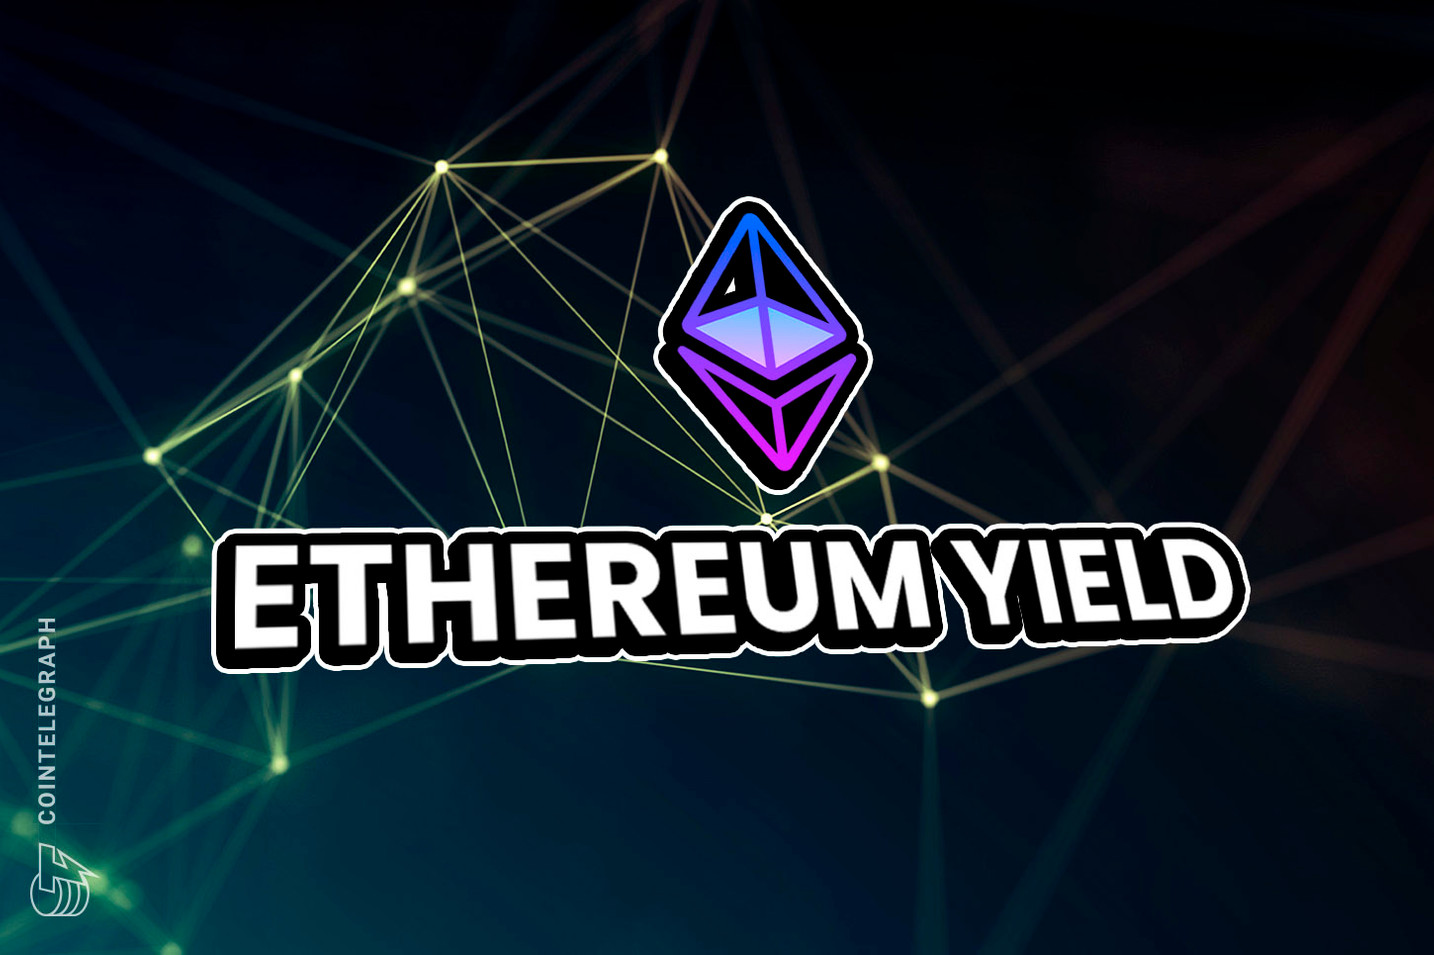 Ethereum Yield (ETHY) ready to launch in DeFi zone